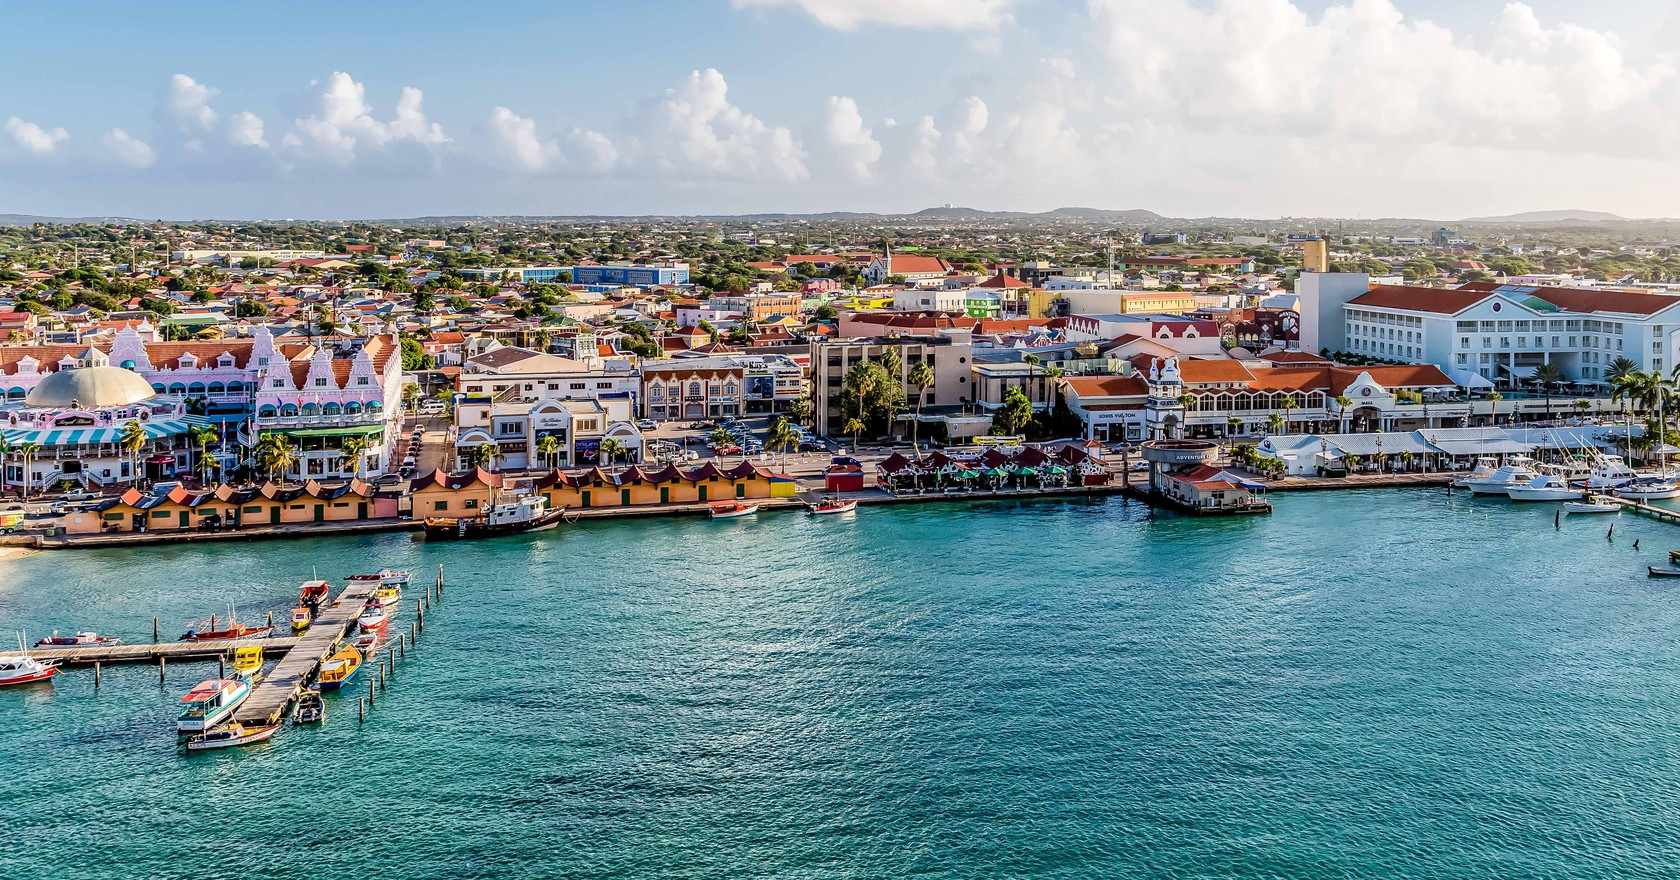 Oranjestad On The Island Of Aruba